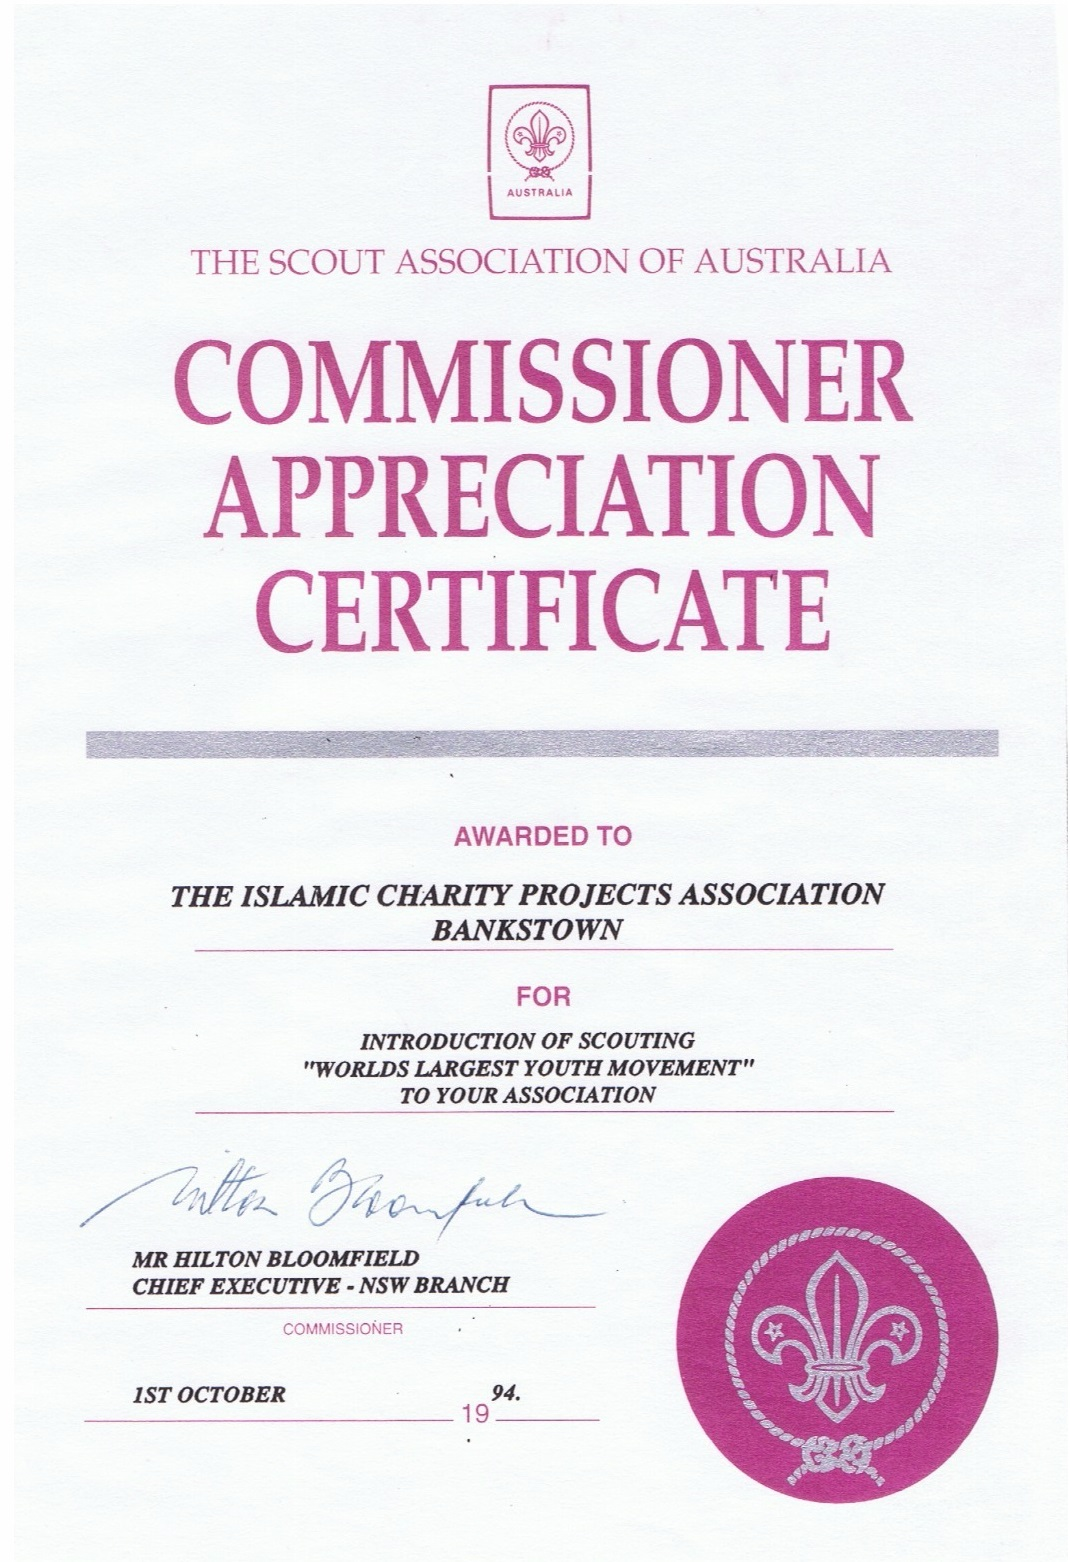 Commissioner Appreciation Certificate - 1994